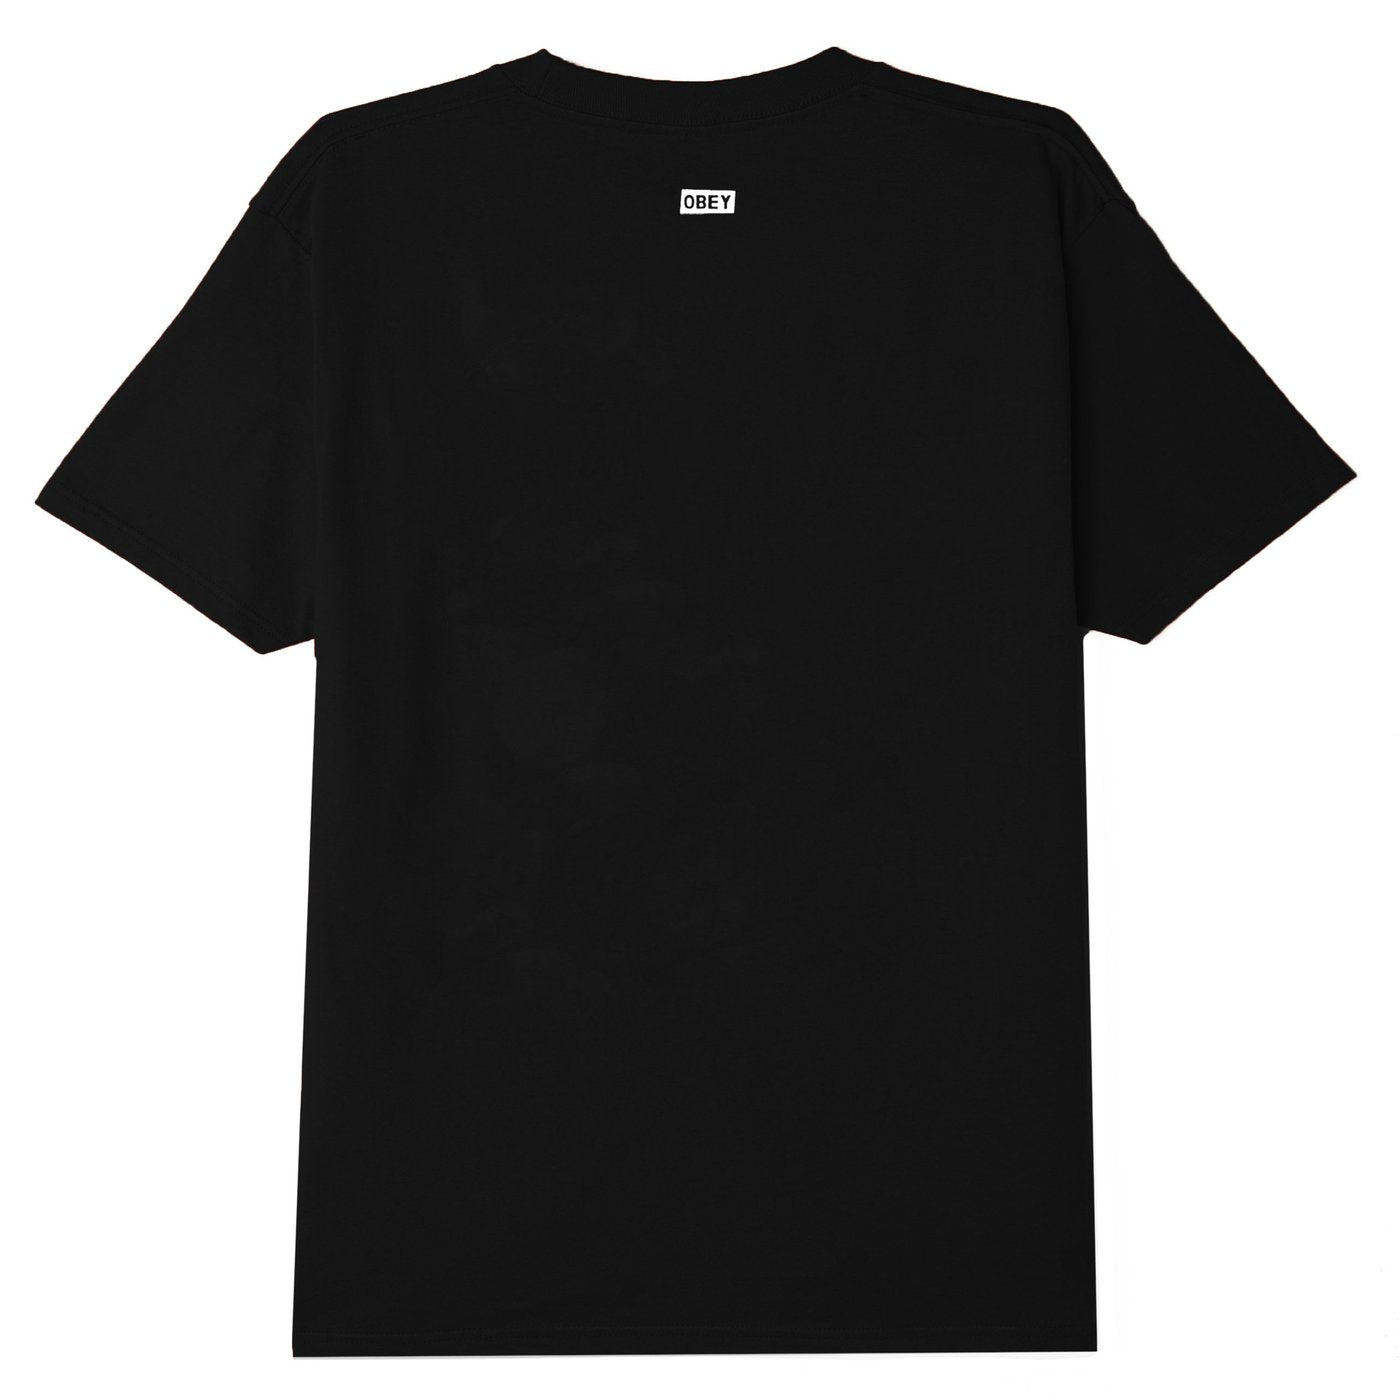 OBEY M'S T-SHIRTS DEFEND BLACK LIVES CLASSIC T-SHIRT